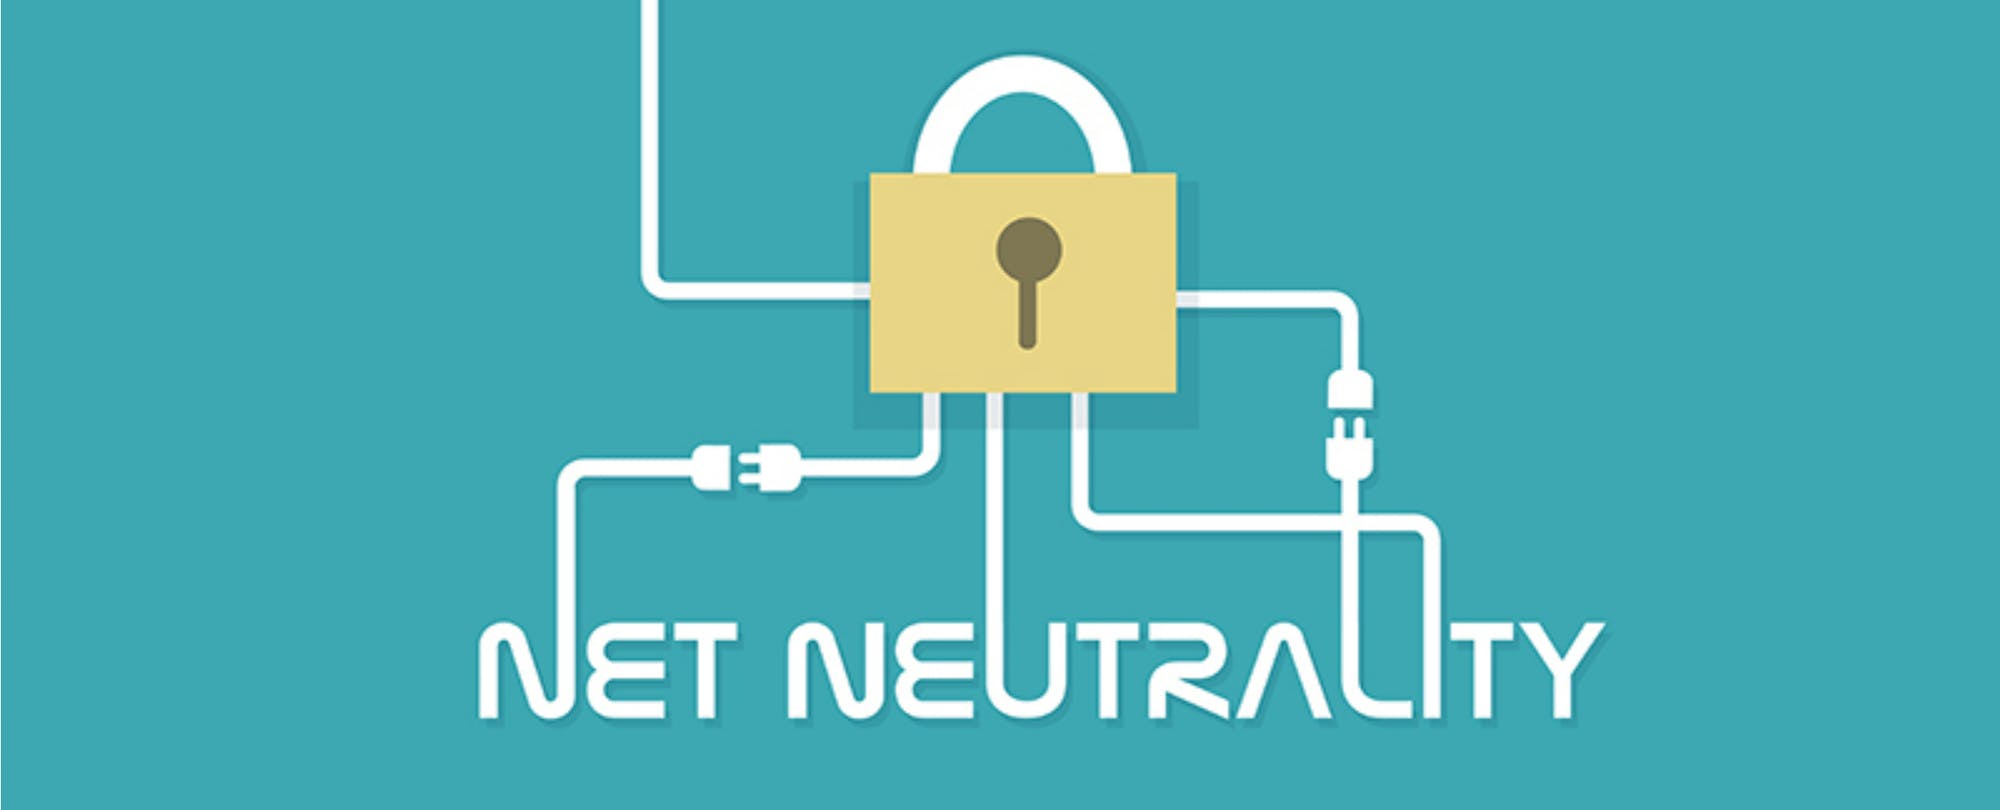 Will Net Neutrality Reversal Hurt Digital Learning? As Vote Approaches, Mixed Opinions